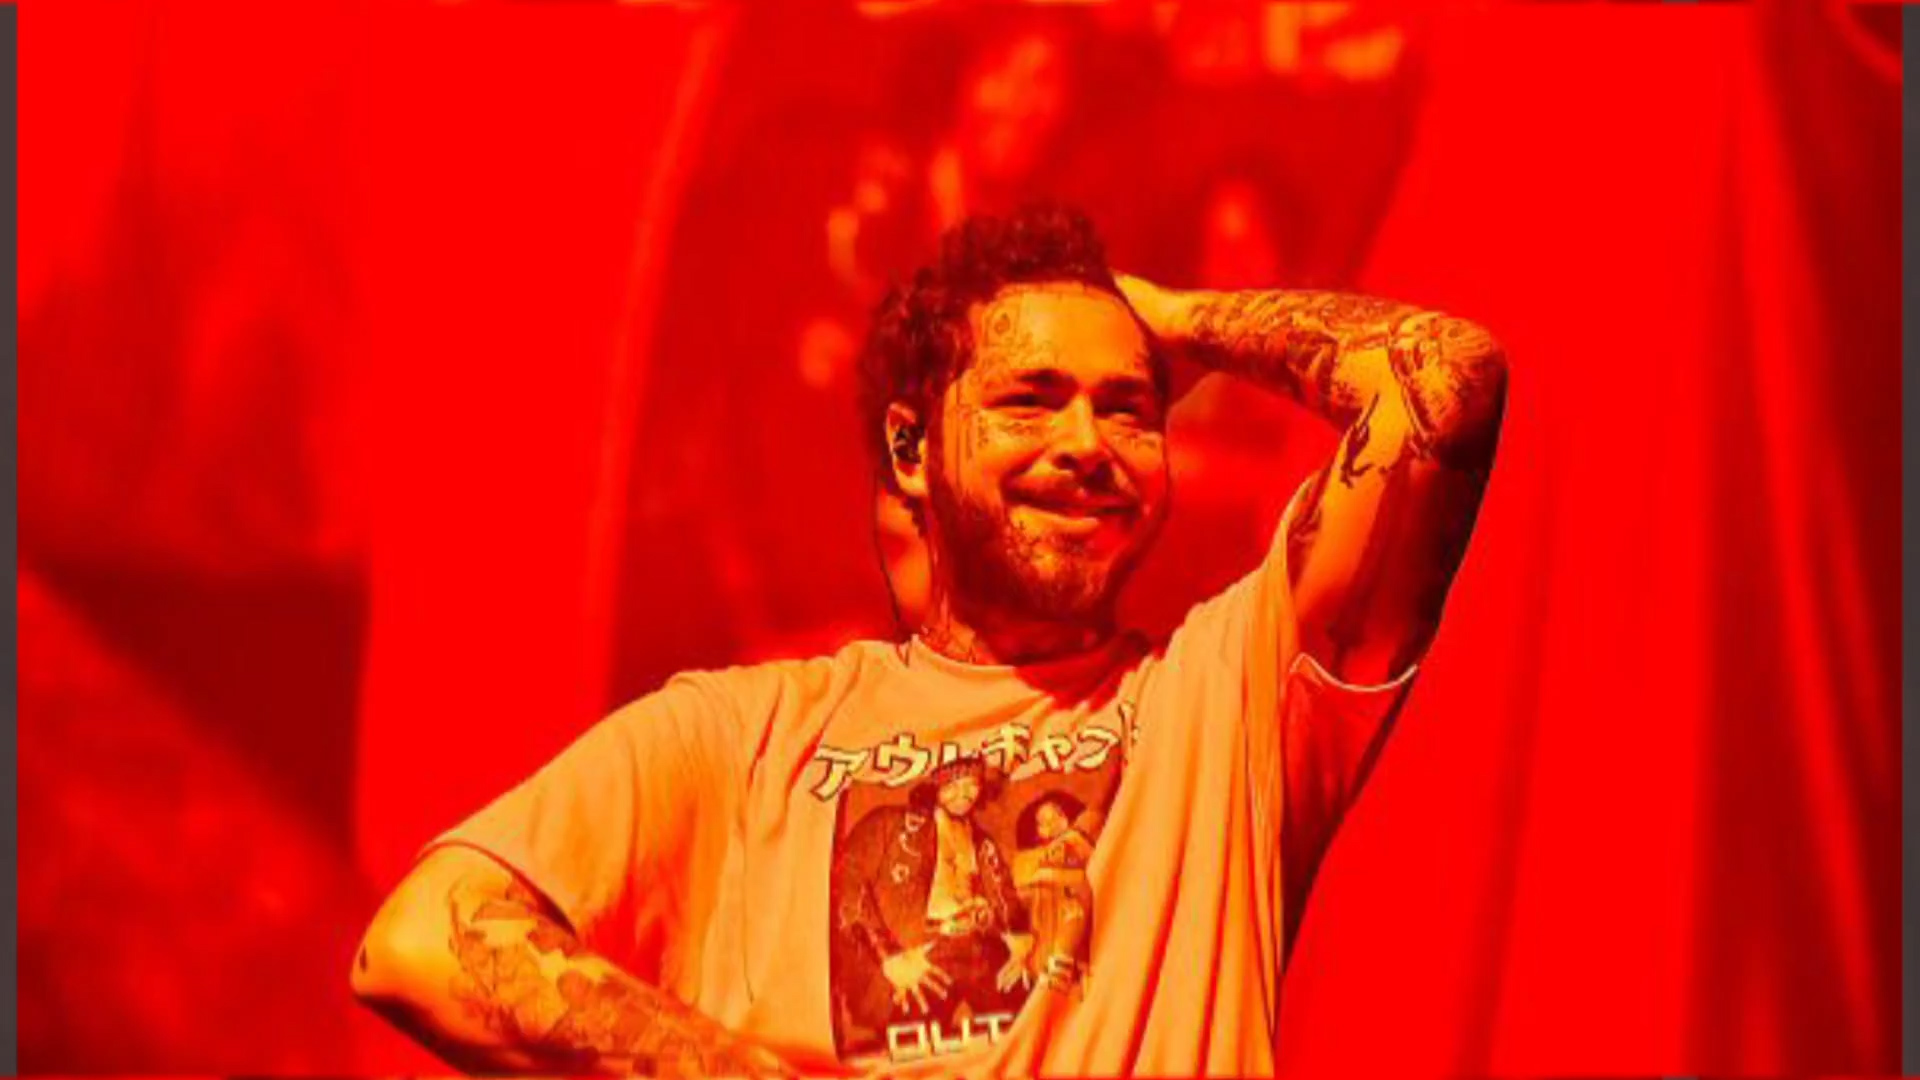 Post Malone feels 'fantastic' as he denies fans' dr*g use concerns